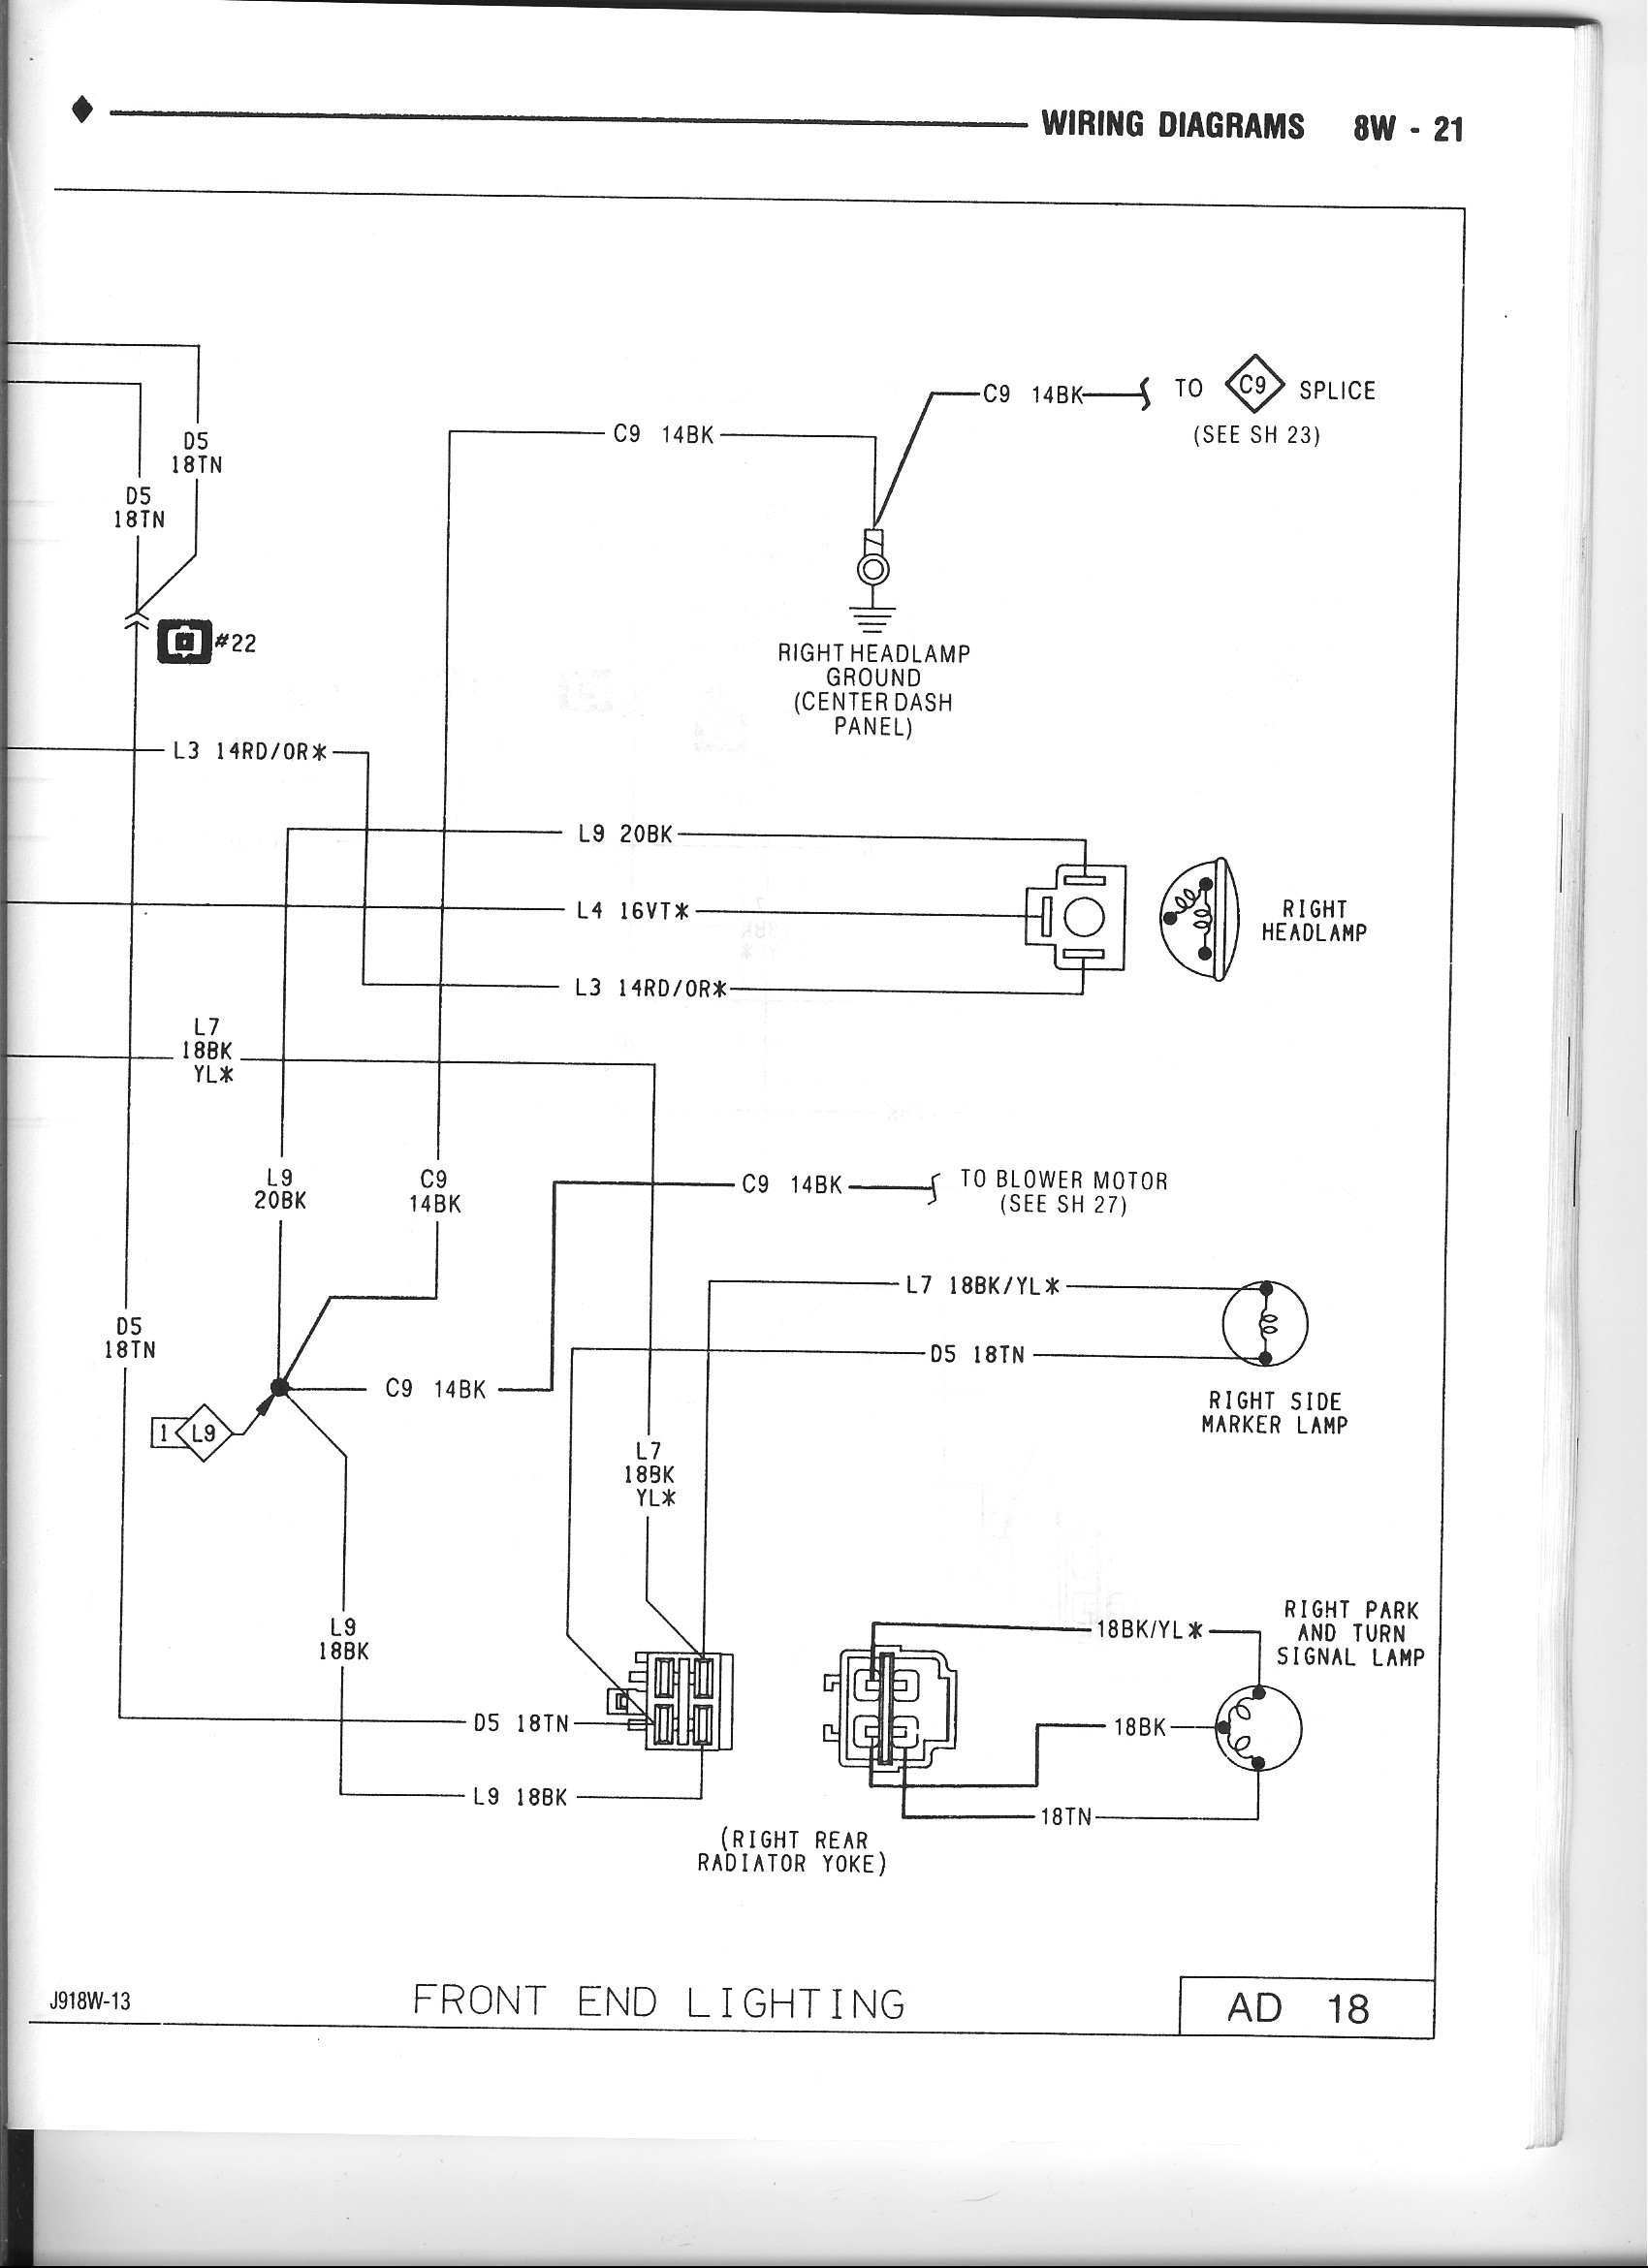 1991 Dodge W250 Wiring Diagram Layout Diagrams 1993 87 Dakota Alternator Get Free Image Cummins Radio